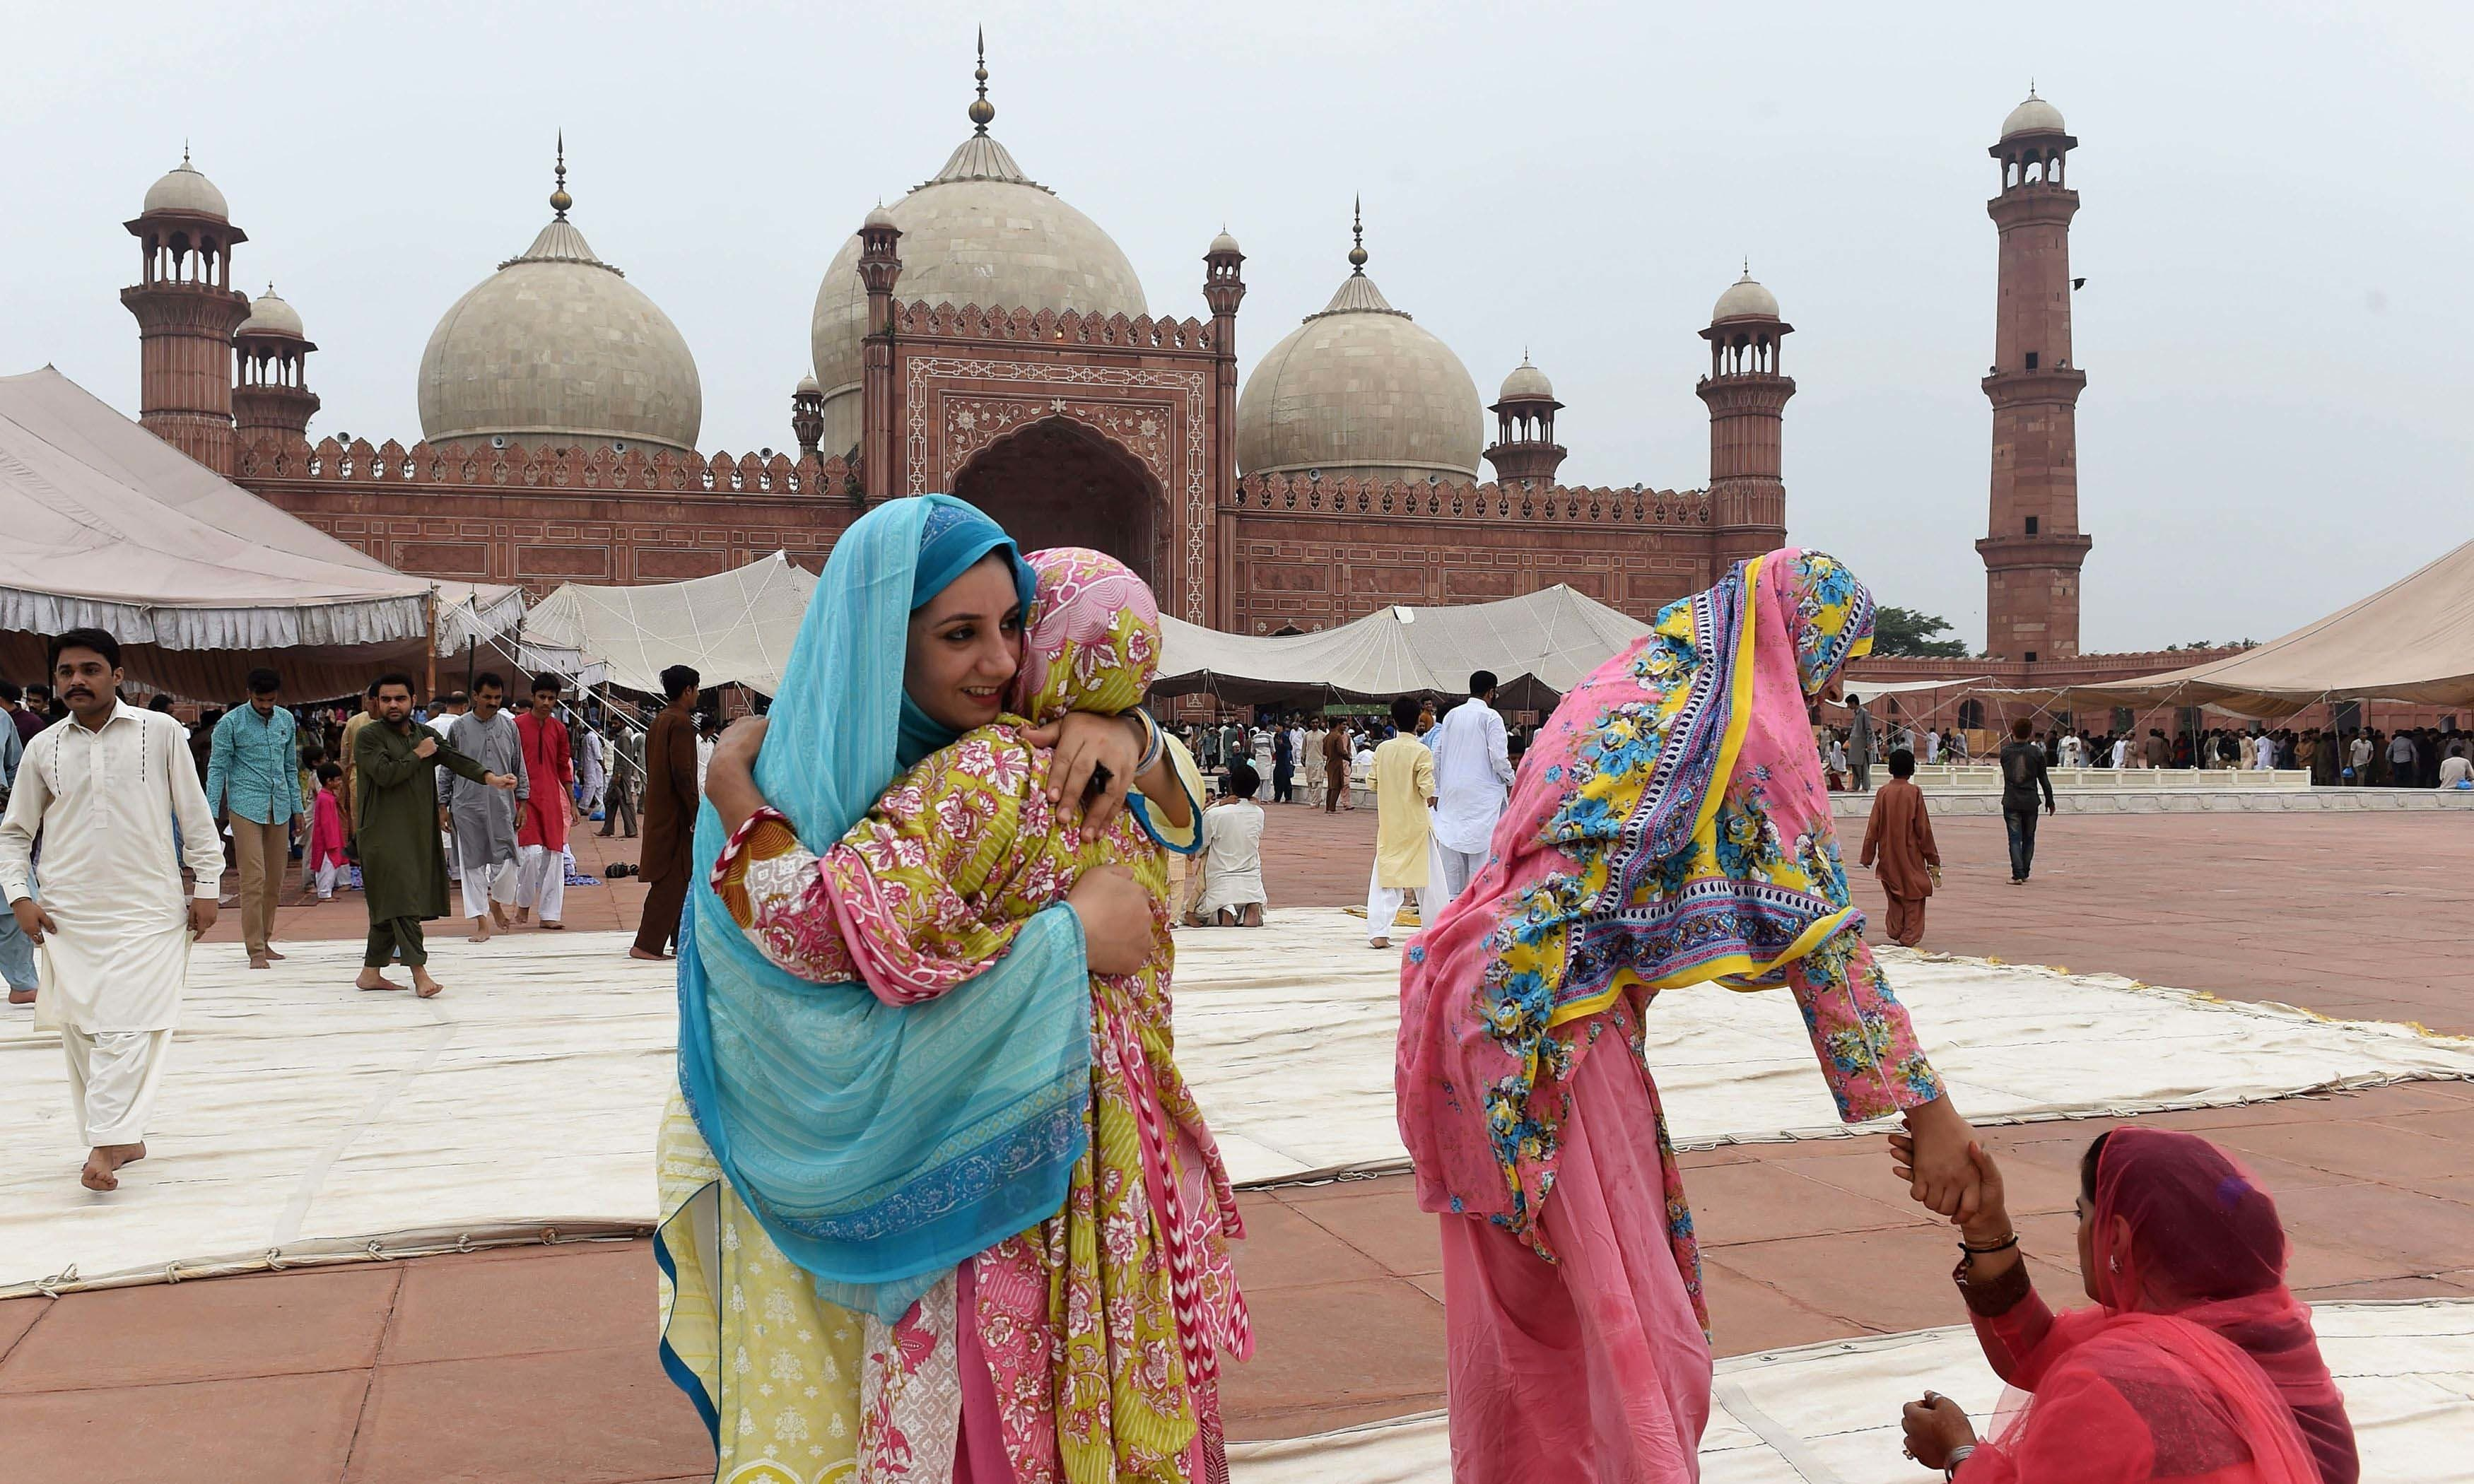 Women hug each other after Eid prayers. — AFP